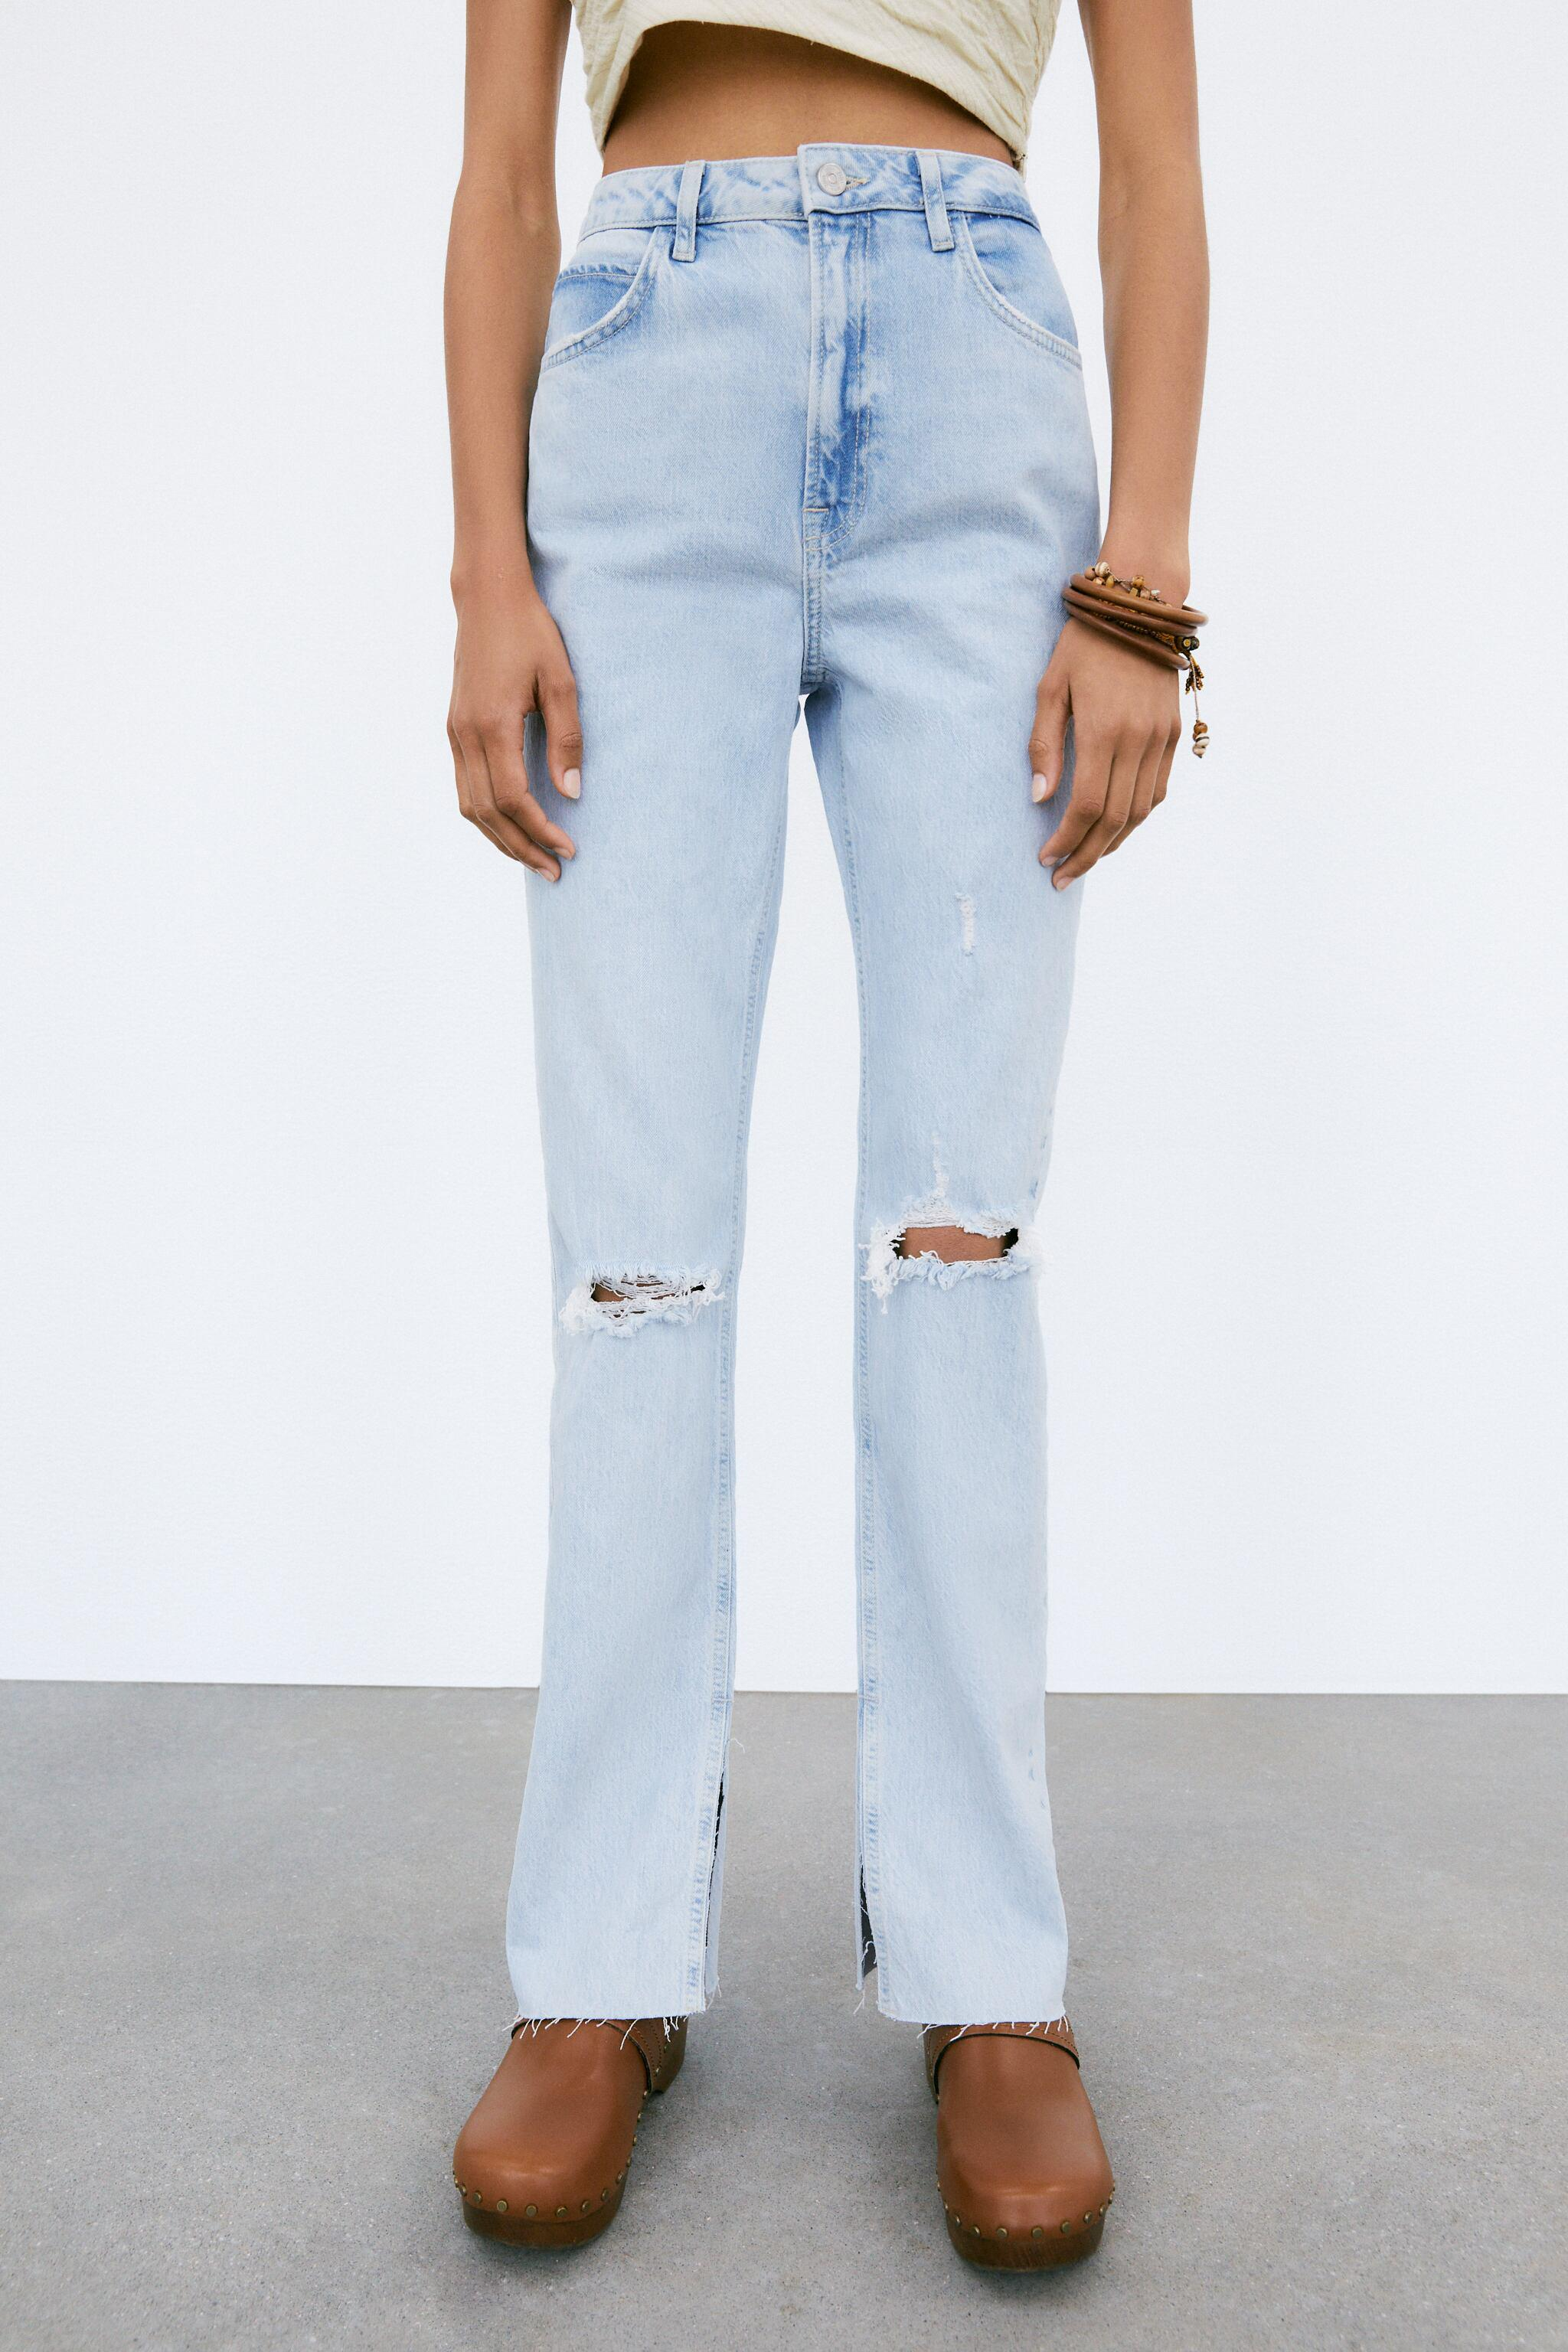 Z1975 FLARED RIPPED SLIM FIT JEANS 1